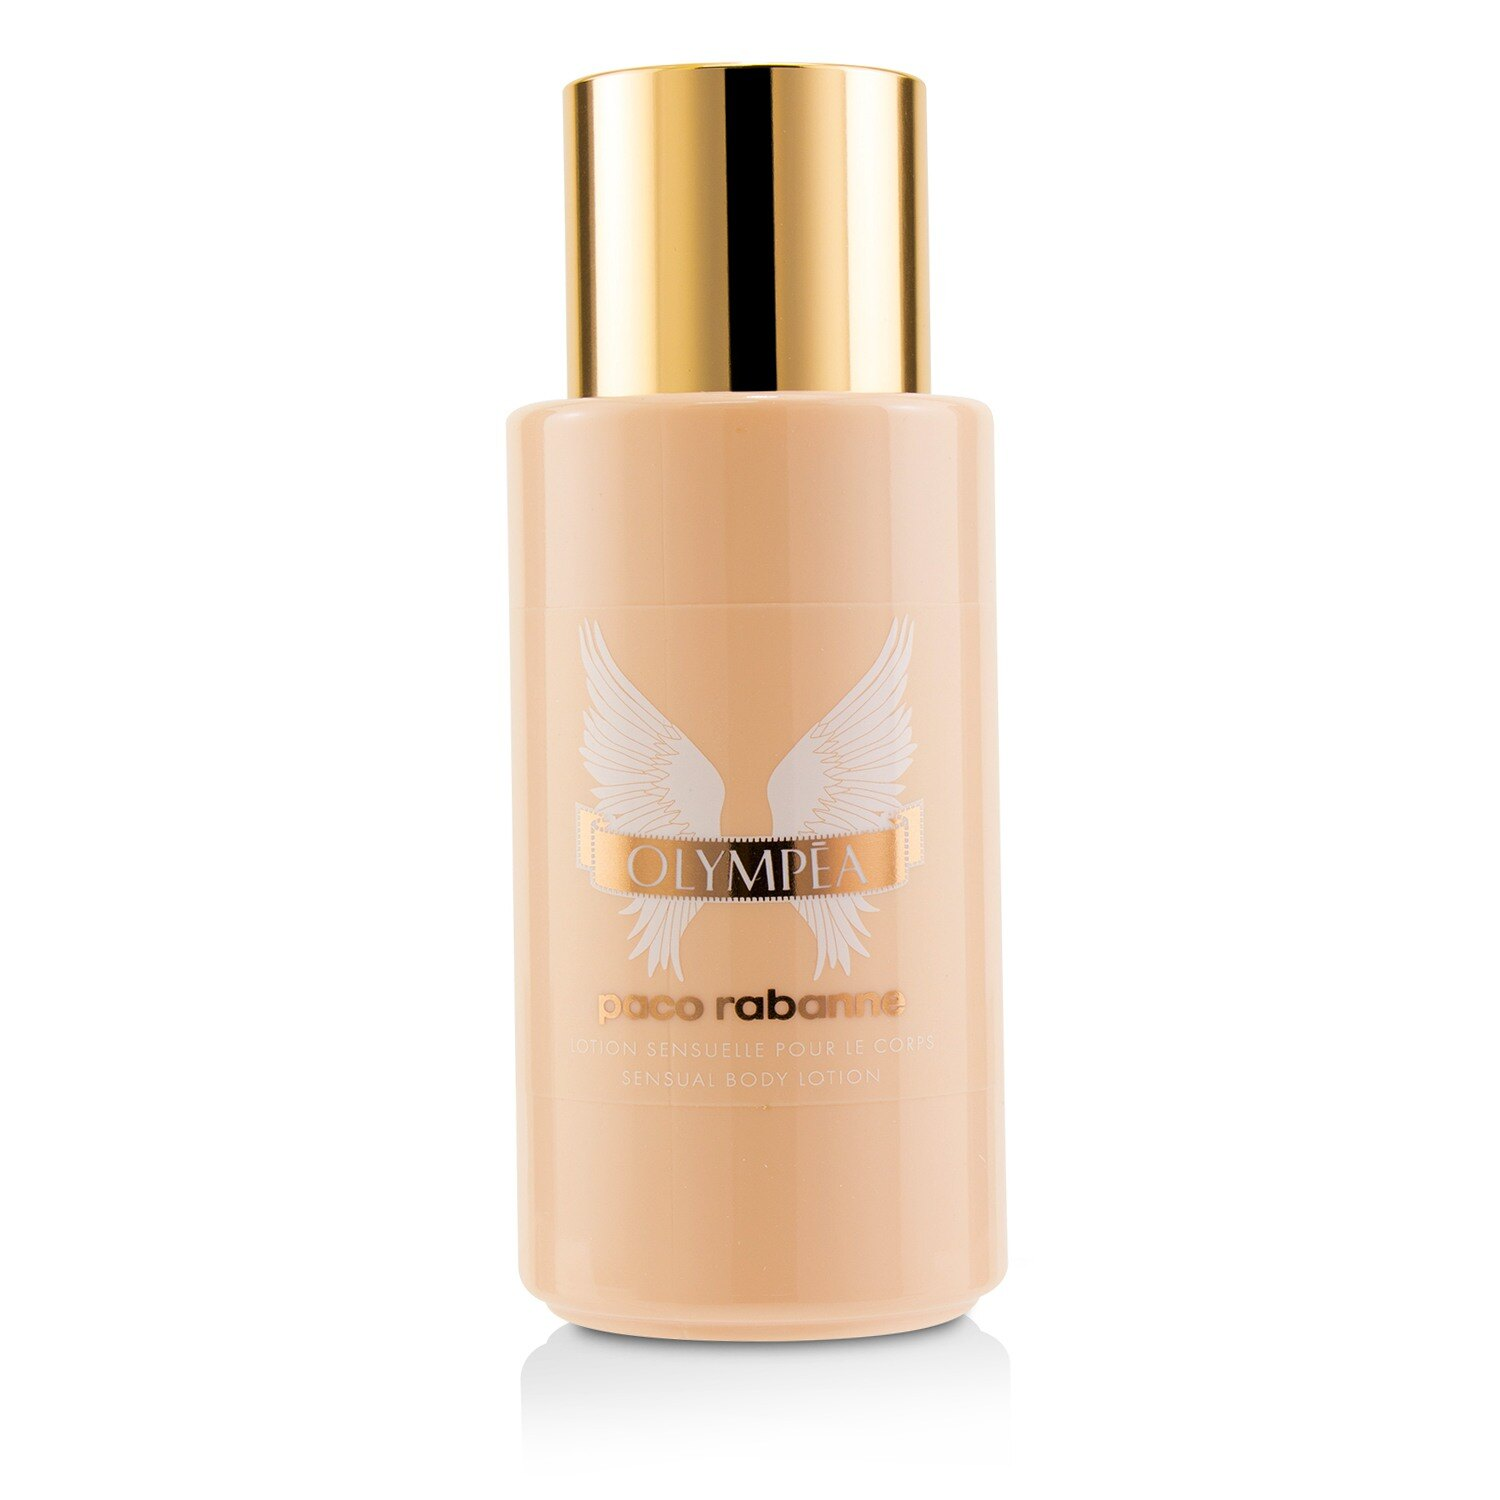 Paco Rabanne - Olympea性感女神女性身體乳液Olympea Sensual Body Lotion